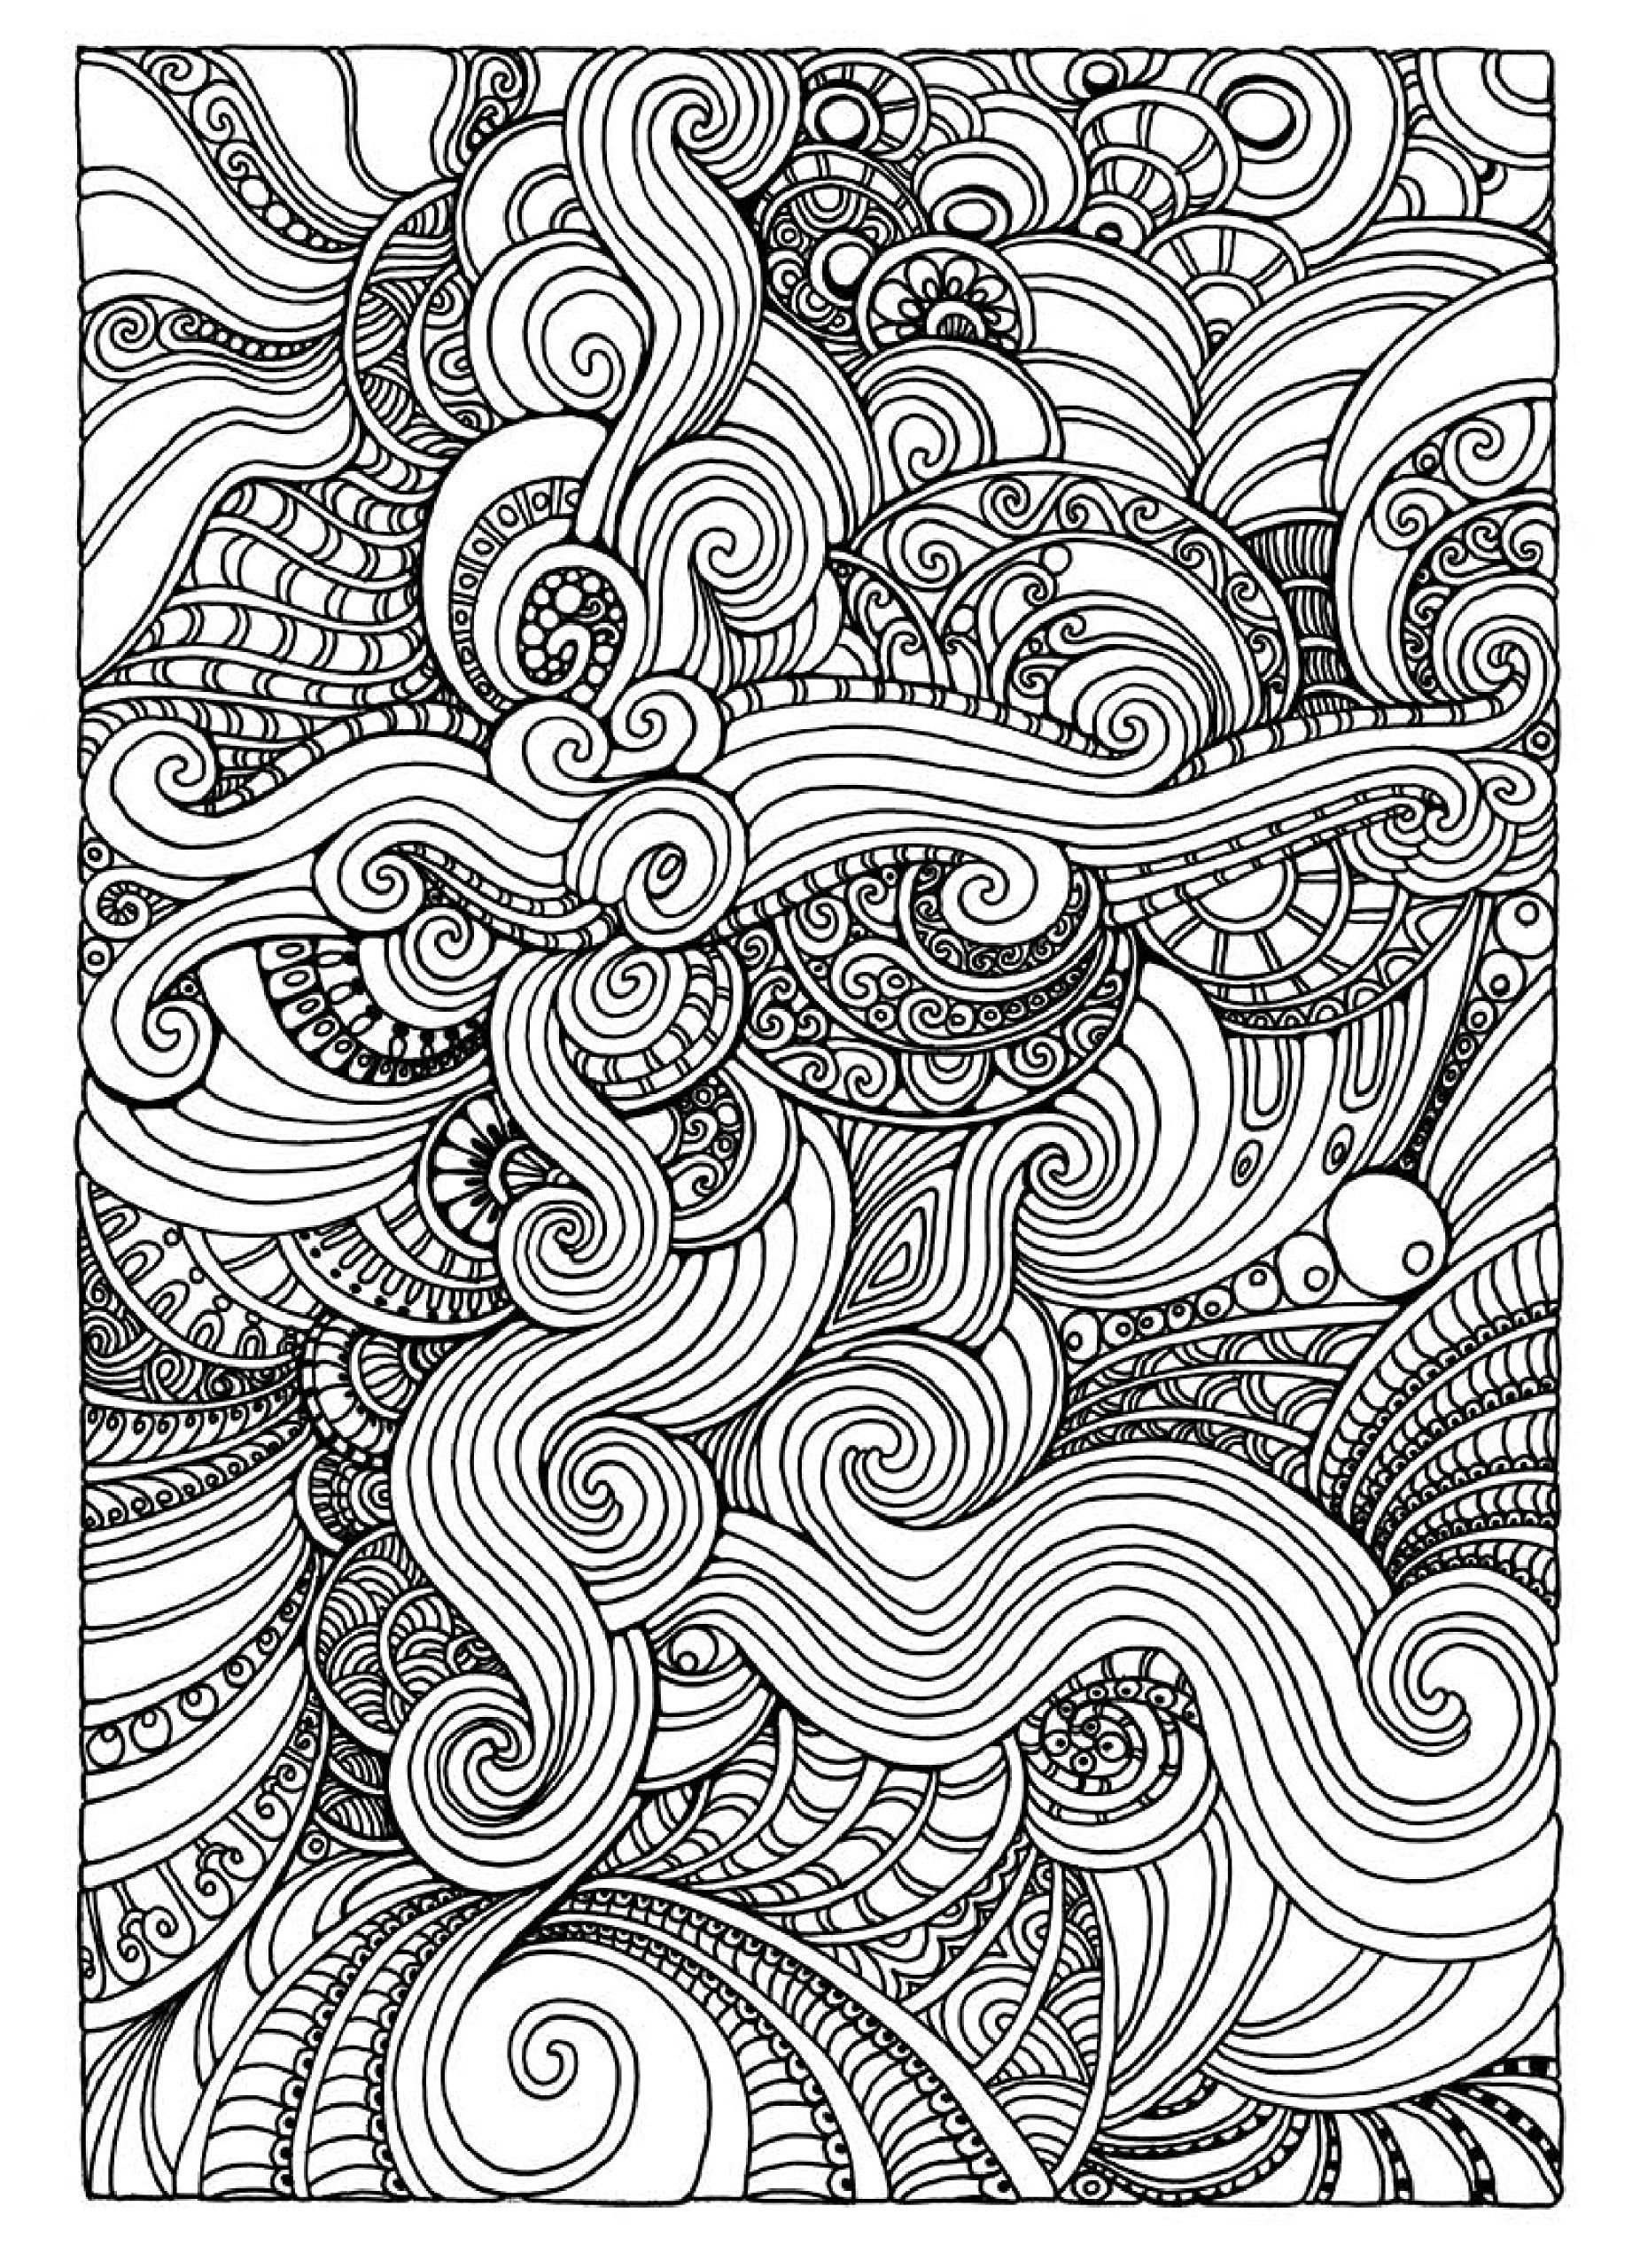 Coloring pages for donna flor - Explore Adult Coloring Pages Coloring And More